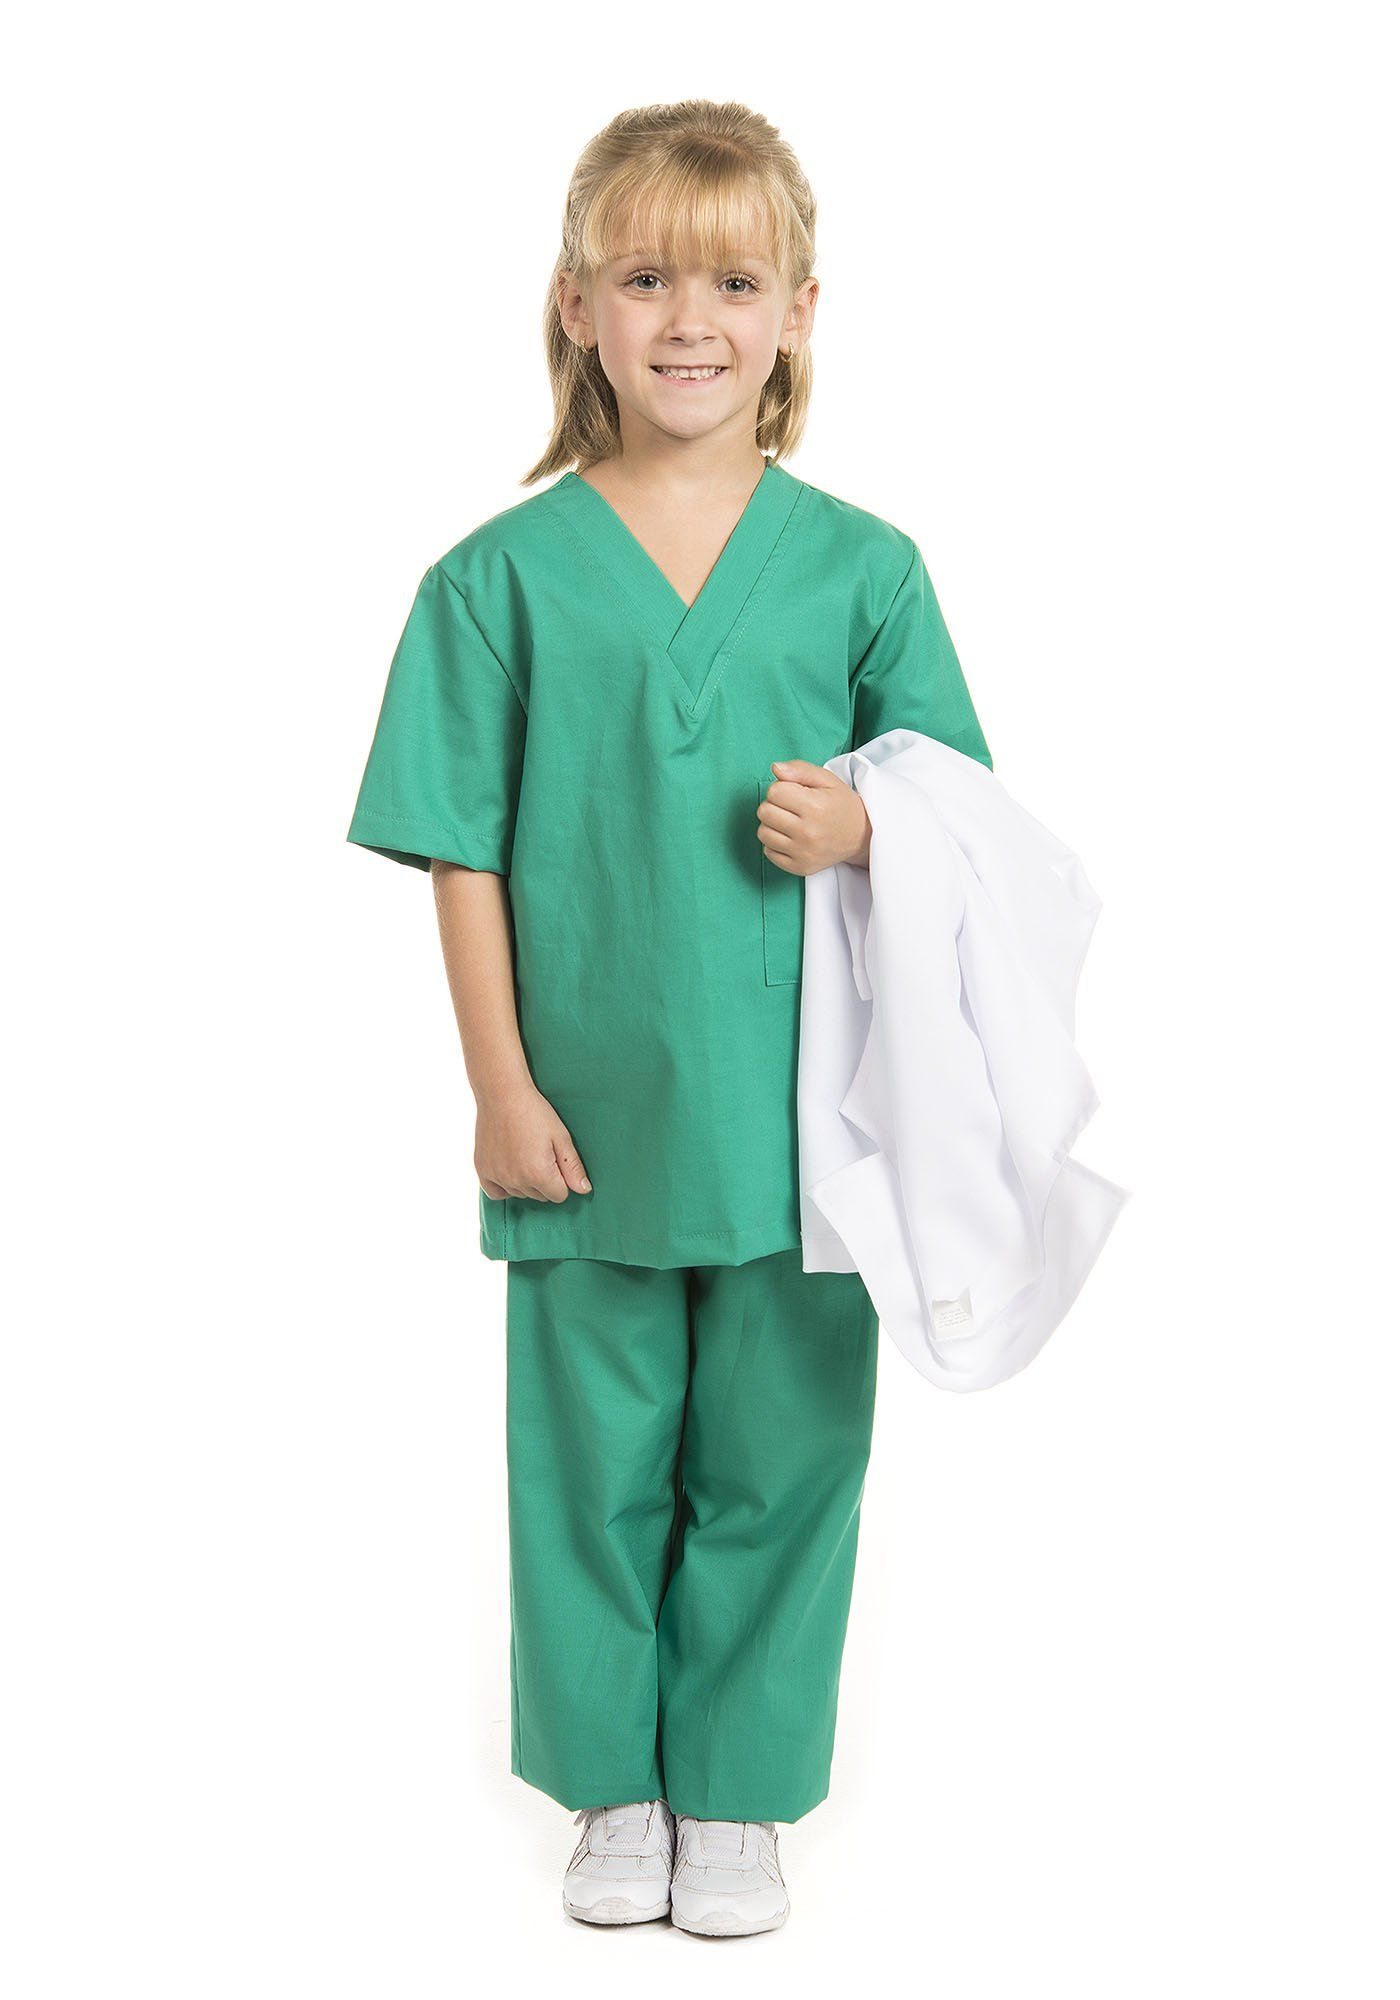 d11baab35e7 Kidcostumes Doctor Medical Scrubs with White Lab Coat Child Youth M 6X8  Child >>> Make certain to have a look at this amazing item.